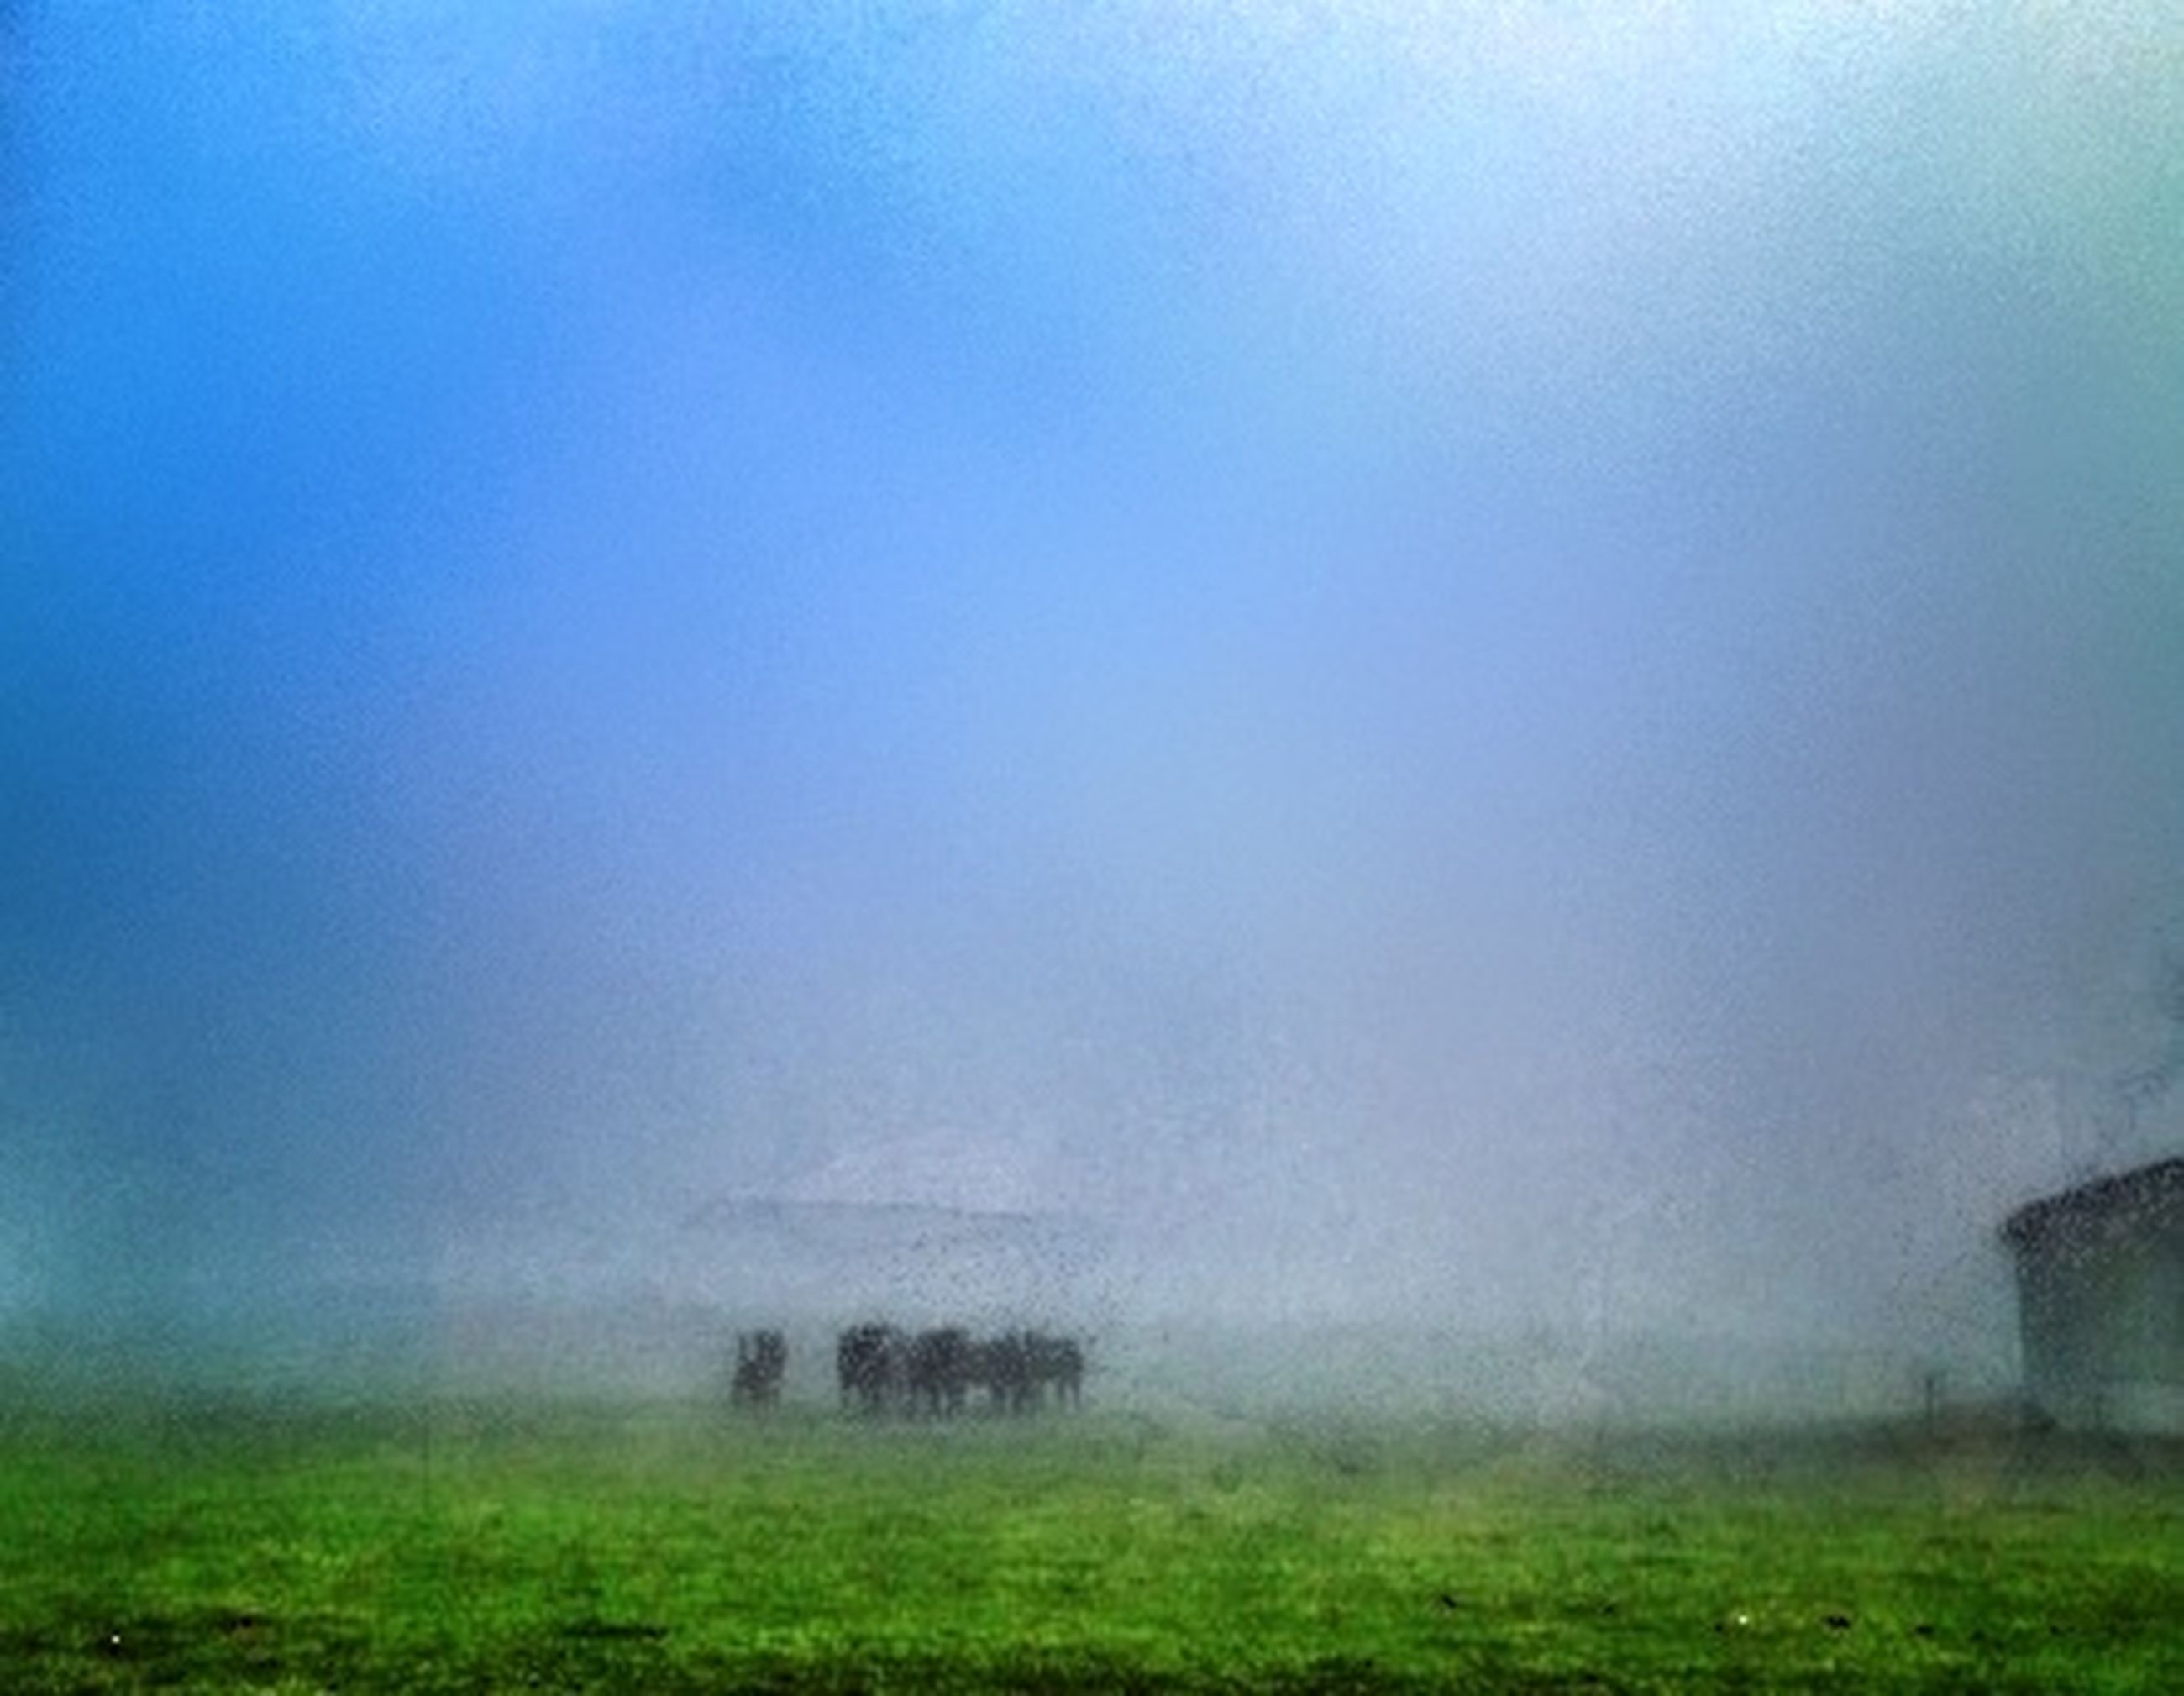 fog, foggy, weather, field, landscape, tranquil scene, tranquility, grass, beauty in nature, nature, scenics, copy space, grassy, sky, tree, growth, green color, outdoors, mist, rural scene